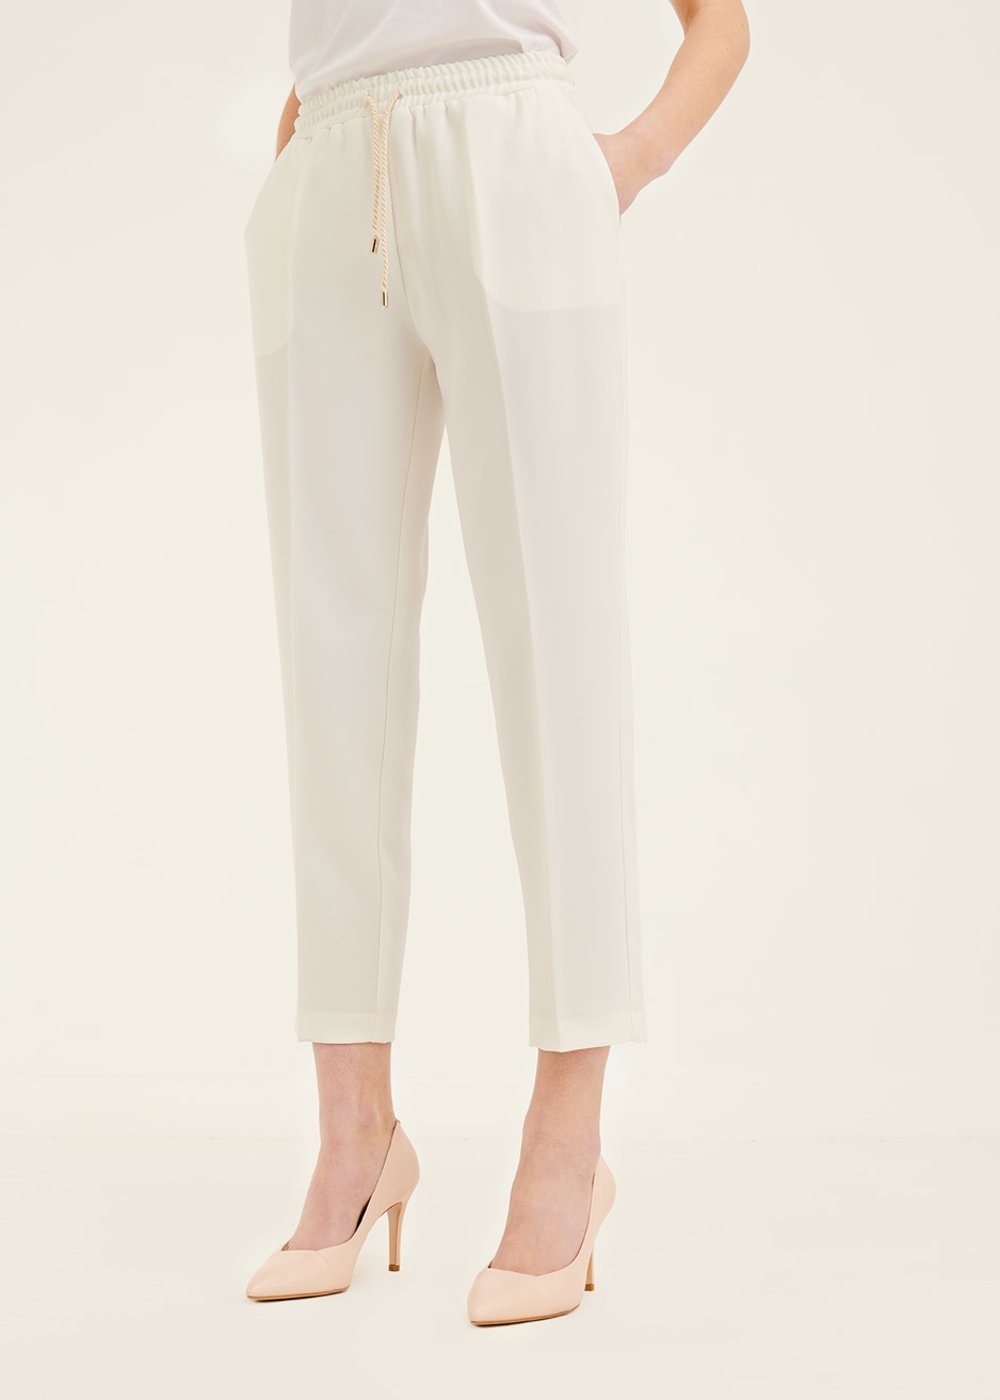 Cara trousers with drawstring waist - White - Woman